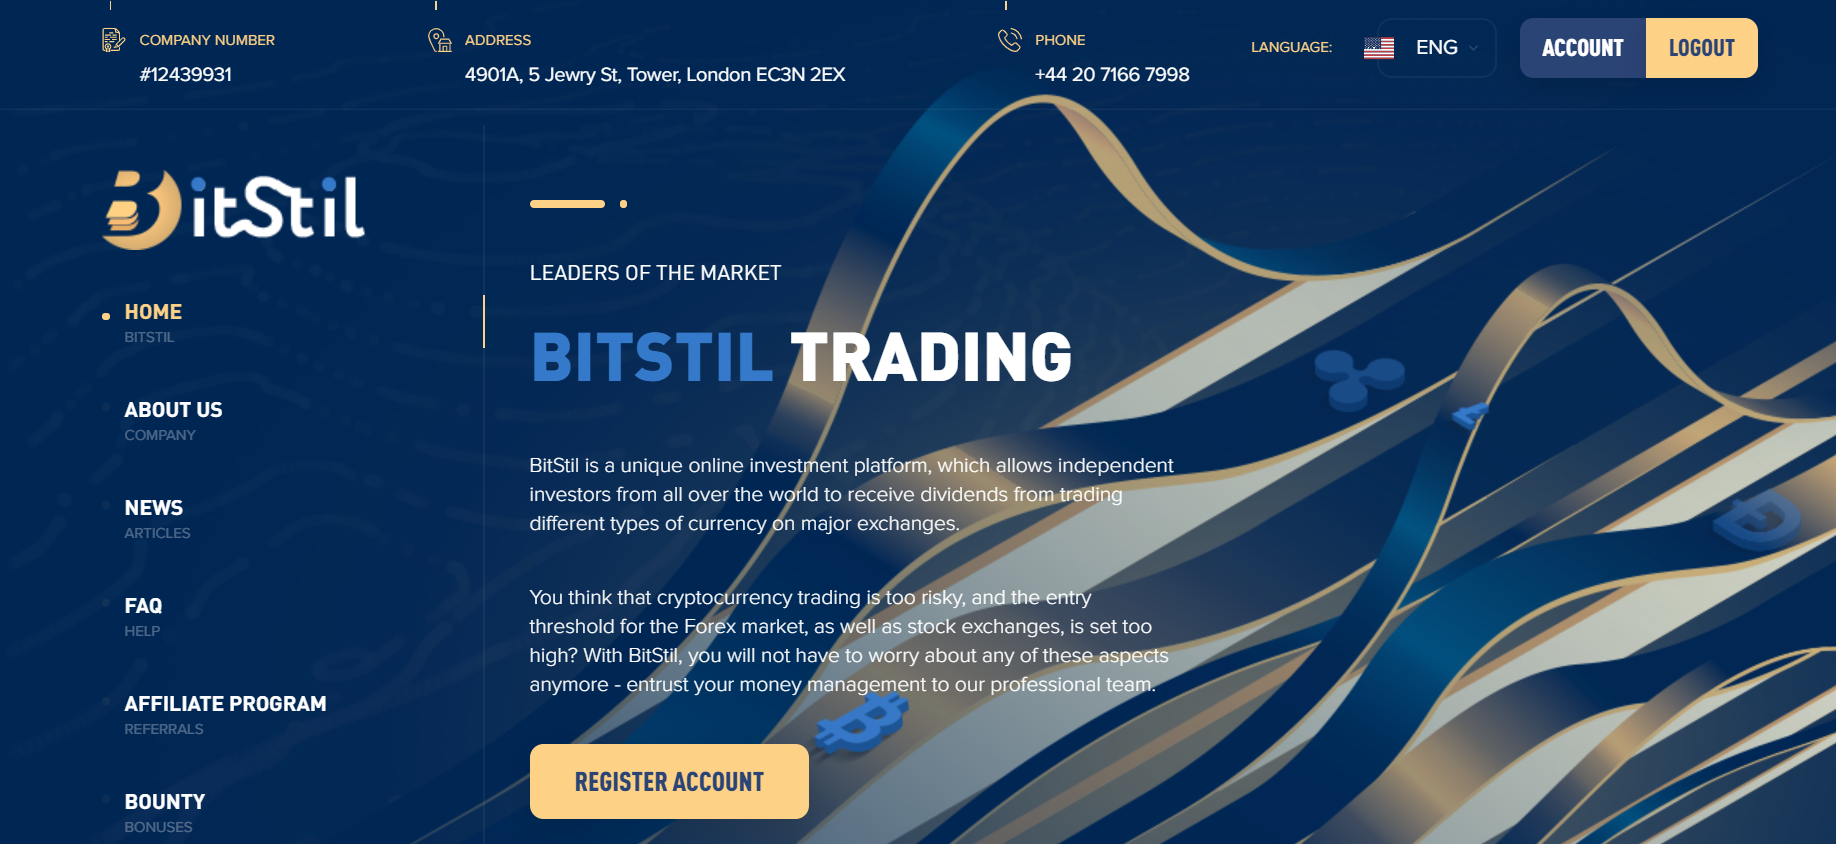 bitstil.com review